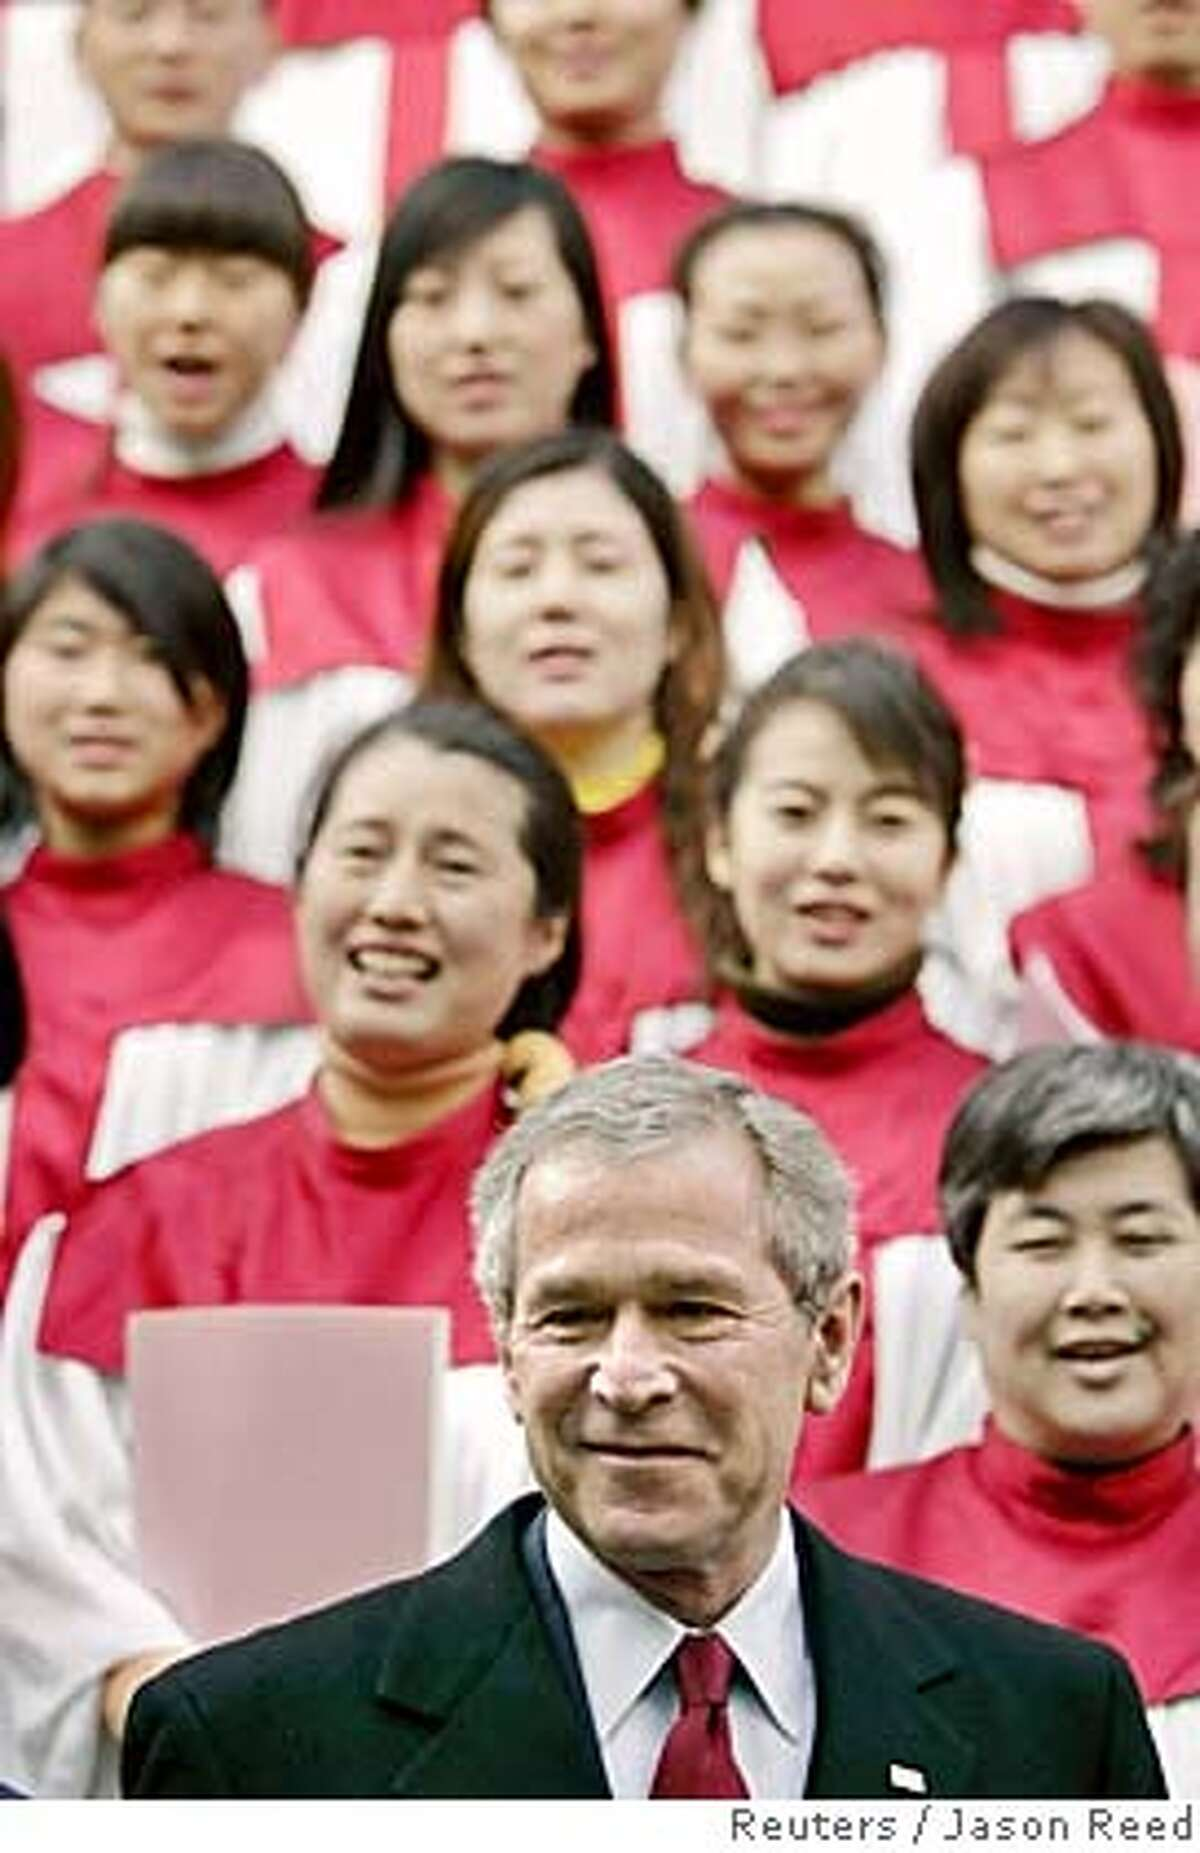 U.S. President George W. Bush poses with members of a Chinese church choir after attending a Sunday church service in Beijing, November 20, 2005. Bush plans to press Chinese President Hu Jintao on Sunday to rein in China's ballooning trade surplus in talks he said would be frank. Bush is in China on a two-day visit. REUTERS/Jason Reed 0